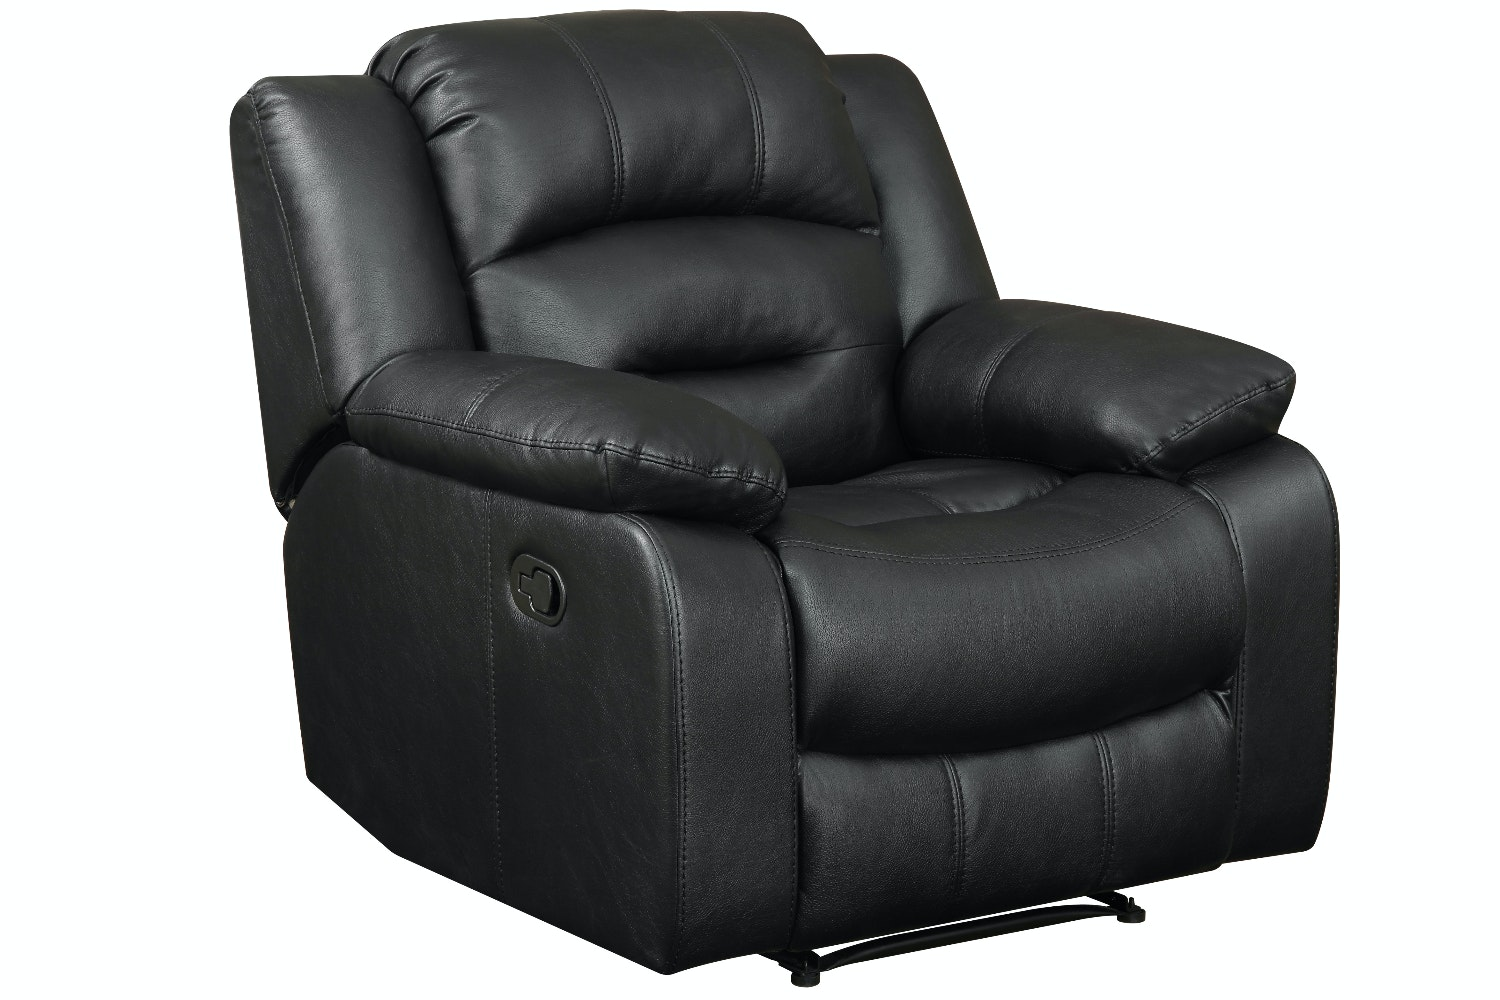 Awesome Hunter Recliner Chair | Black